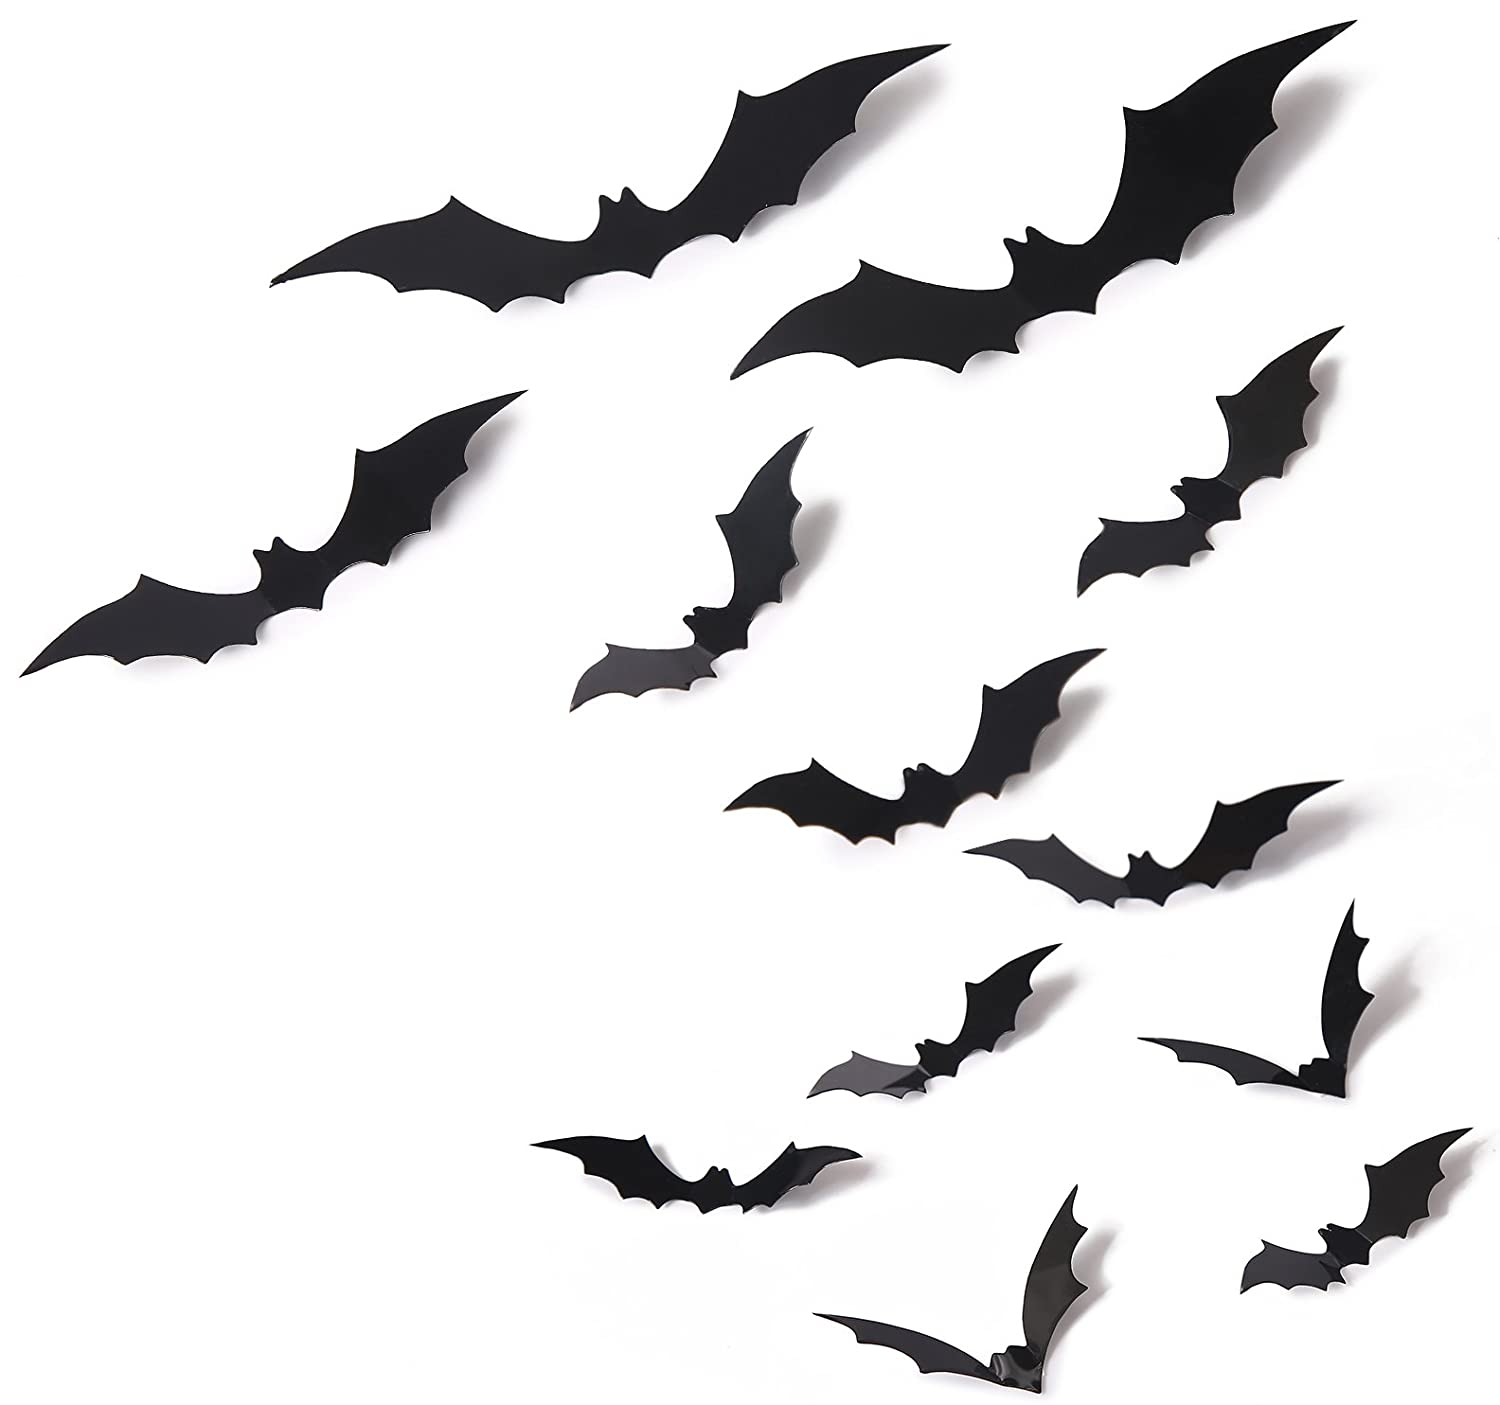 amazoncom 24 pcs bat cutouts 3d assorted sizes black halloween party home wall sticker decoration supplies home kitchen - Halloween Bat Decorations